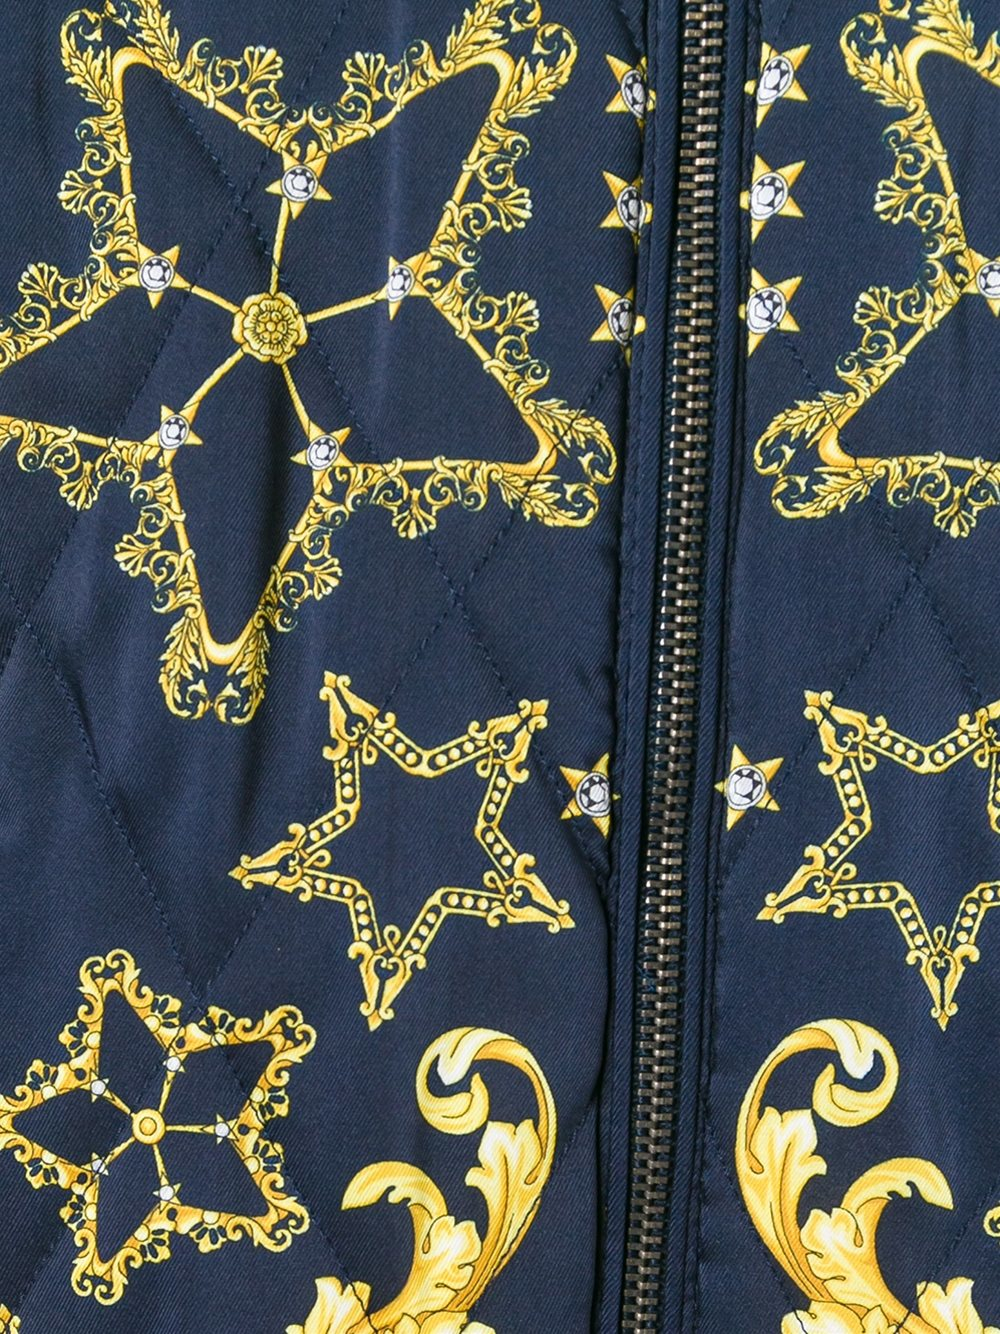 b59a70ab1d91 Lyst - Versace Baroque Star Bomber Jacket in Blue for Men